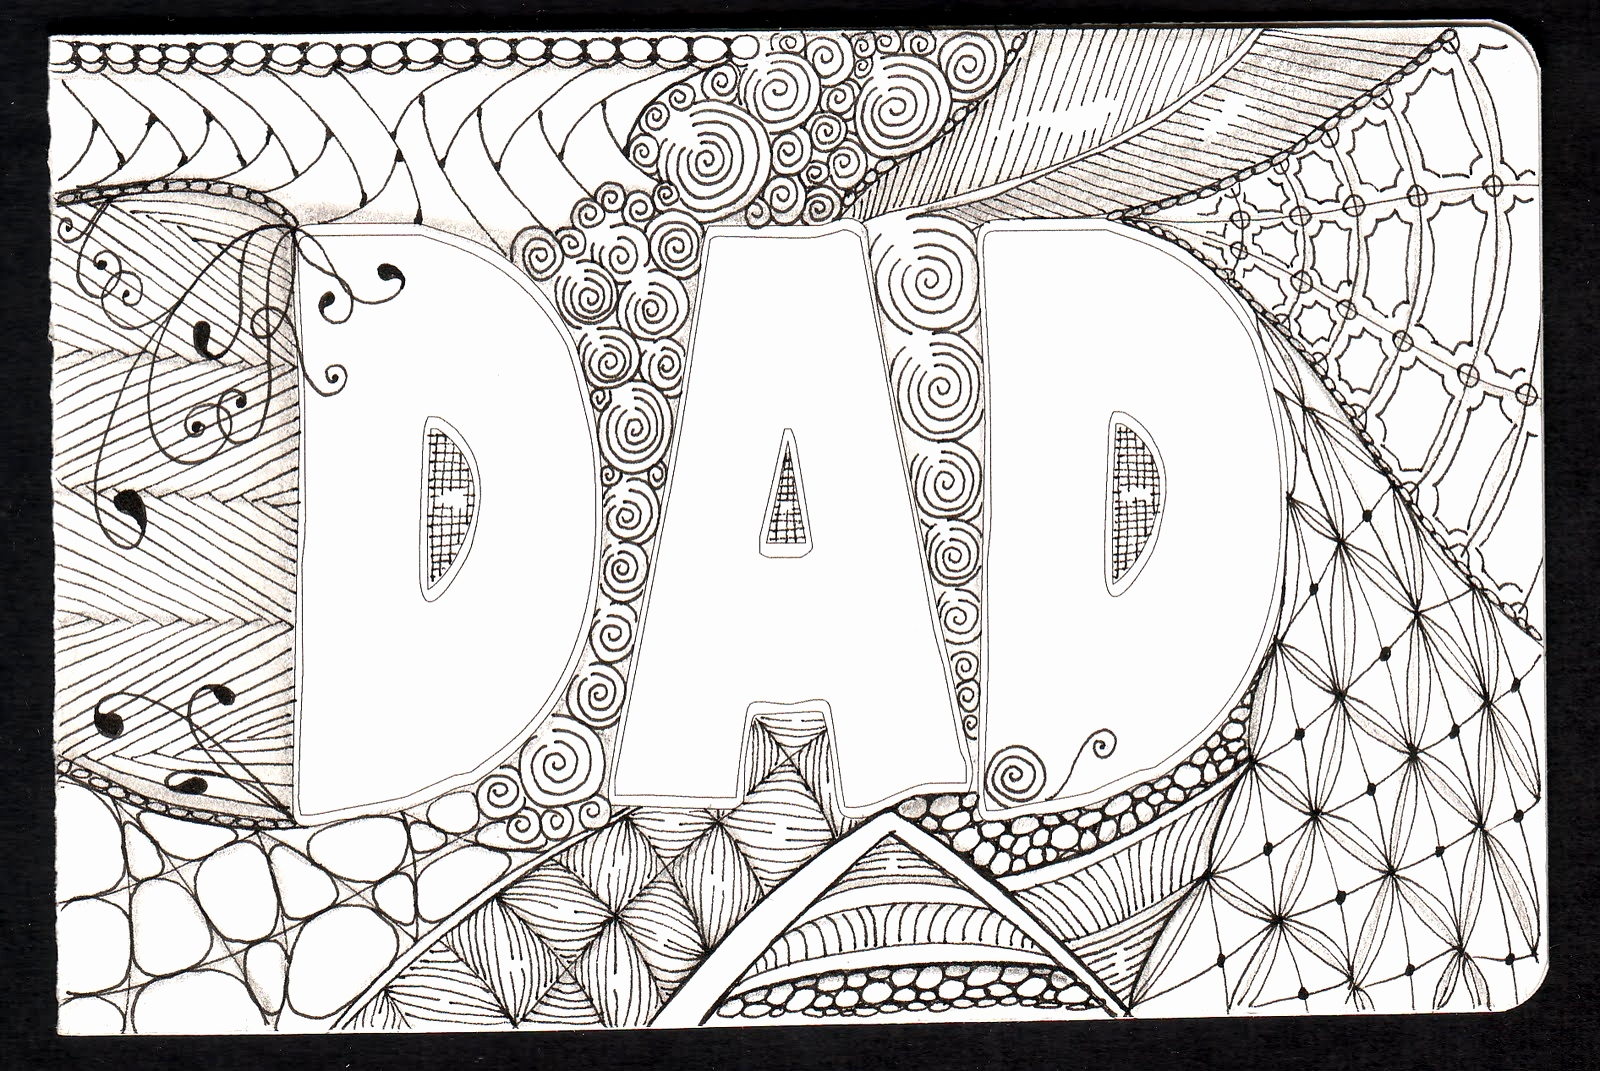 Cards For Dads Birthday Ideas Cards For Dads Birthday Ideas Beautiful Birthday Card Ideas For Dad